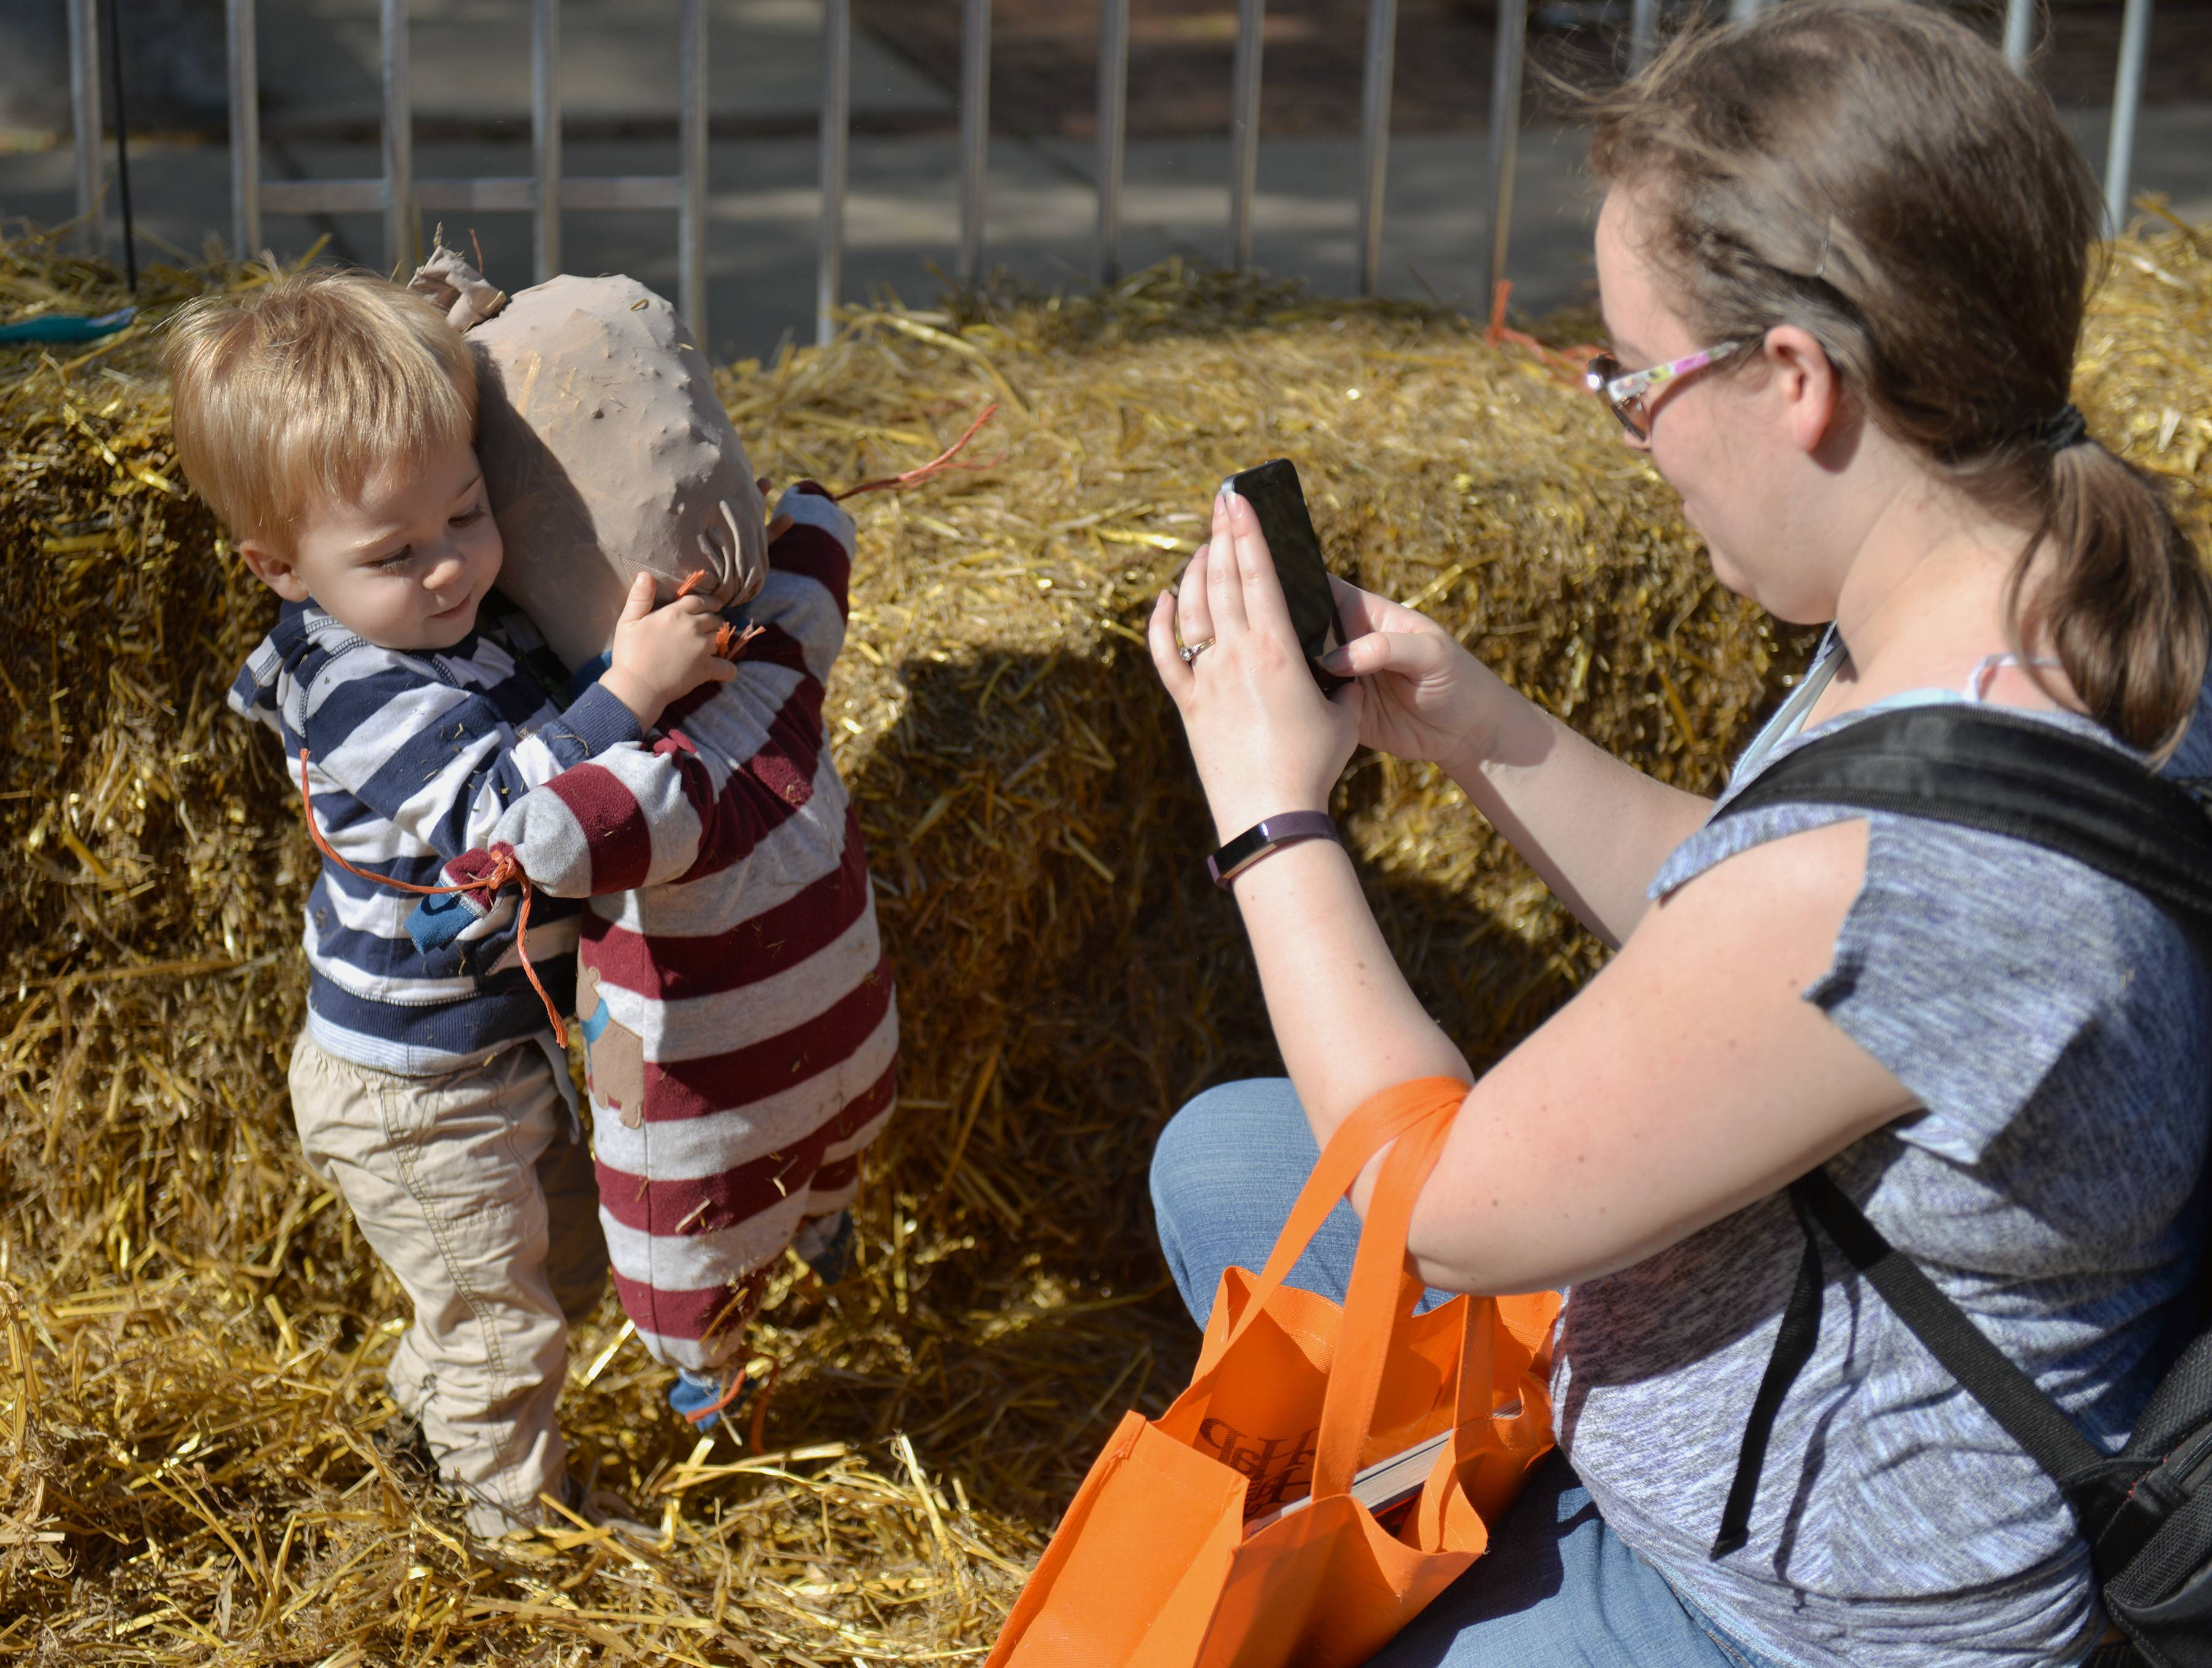 Kelly Gandy of Warrenville photographs her son Benjamin as he tries to hold up a scarecrow they made together Saturday at St. Charles Scarecrow Fest.